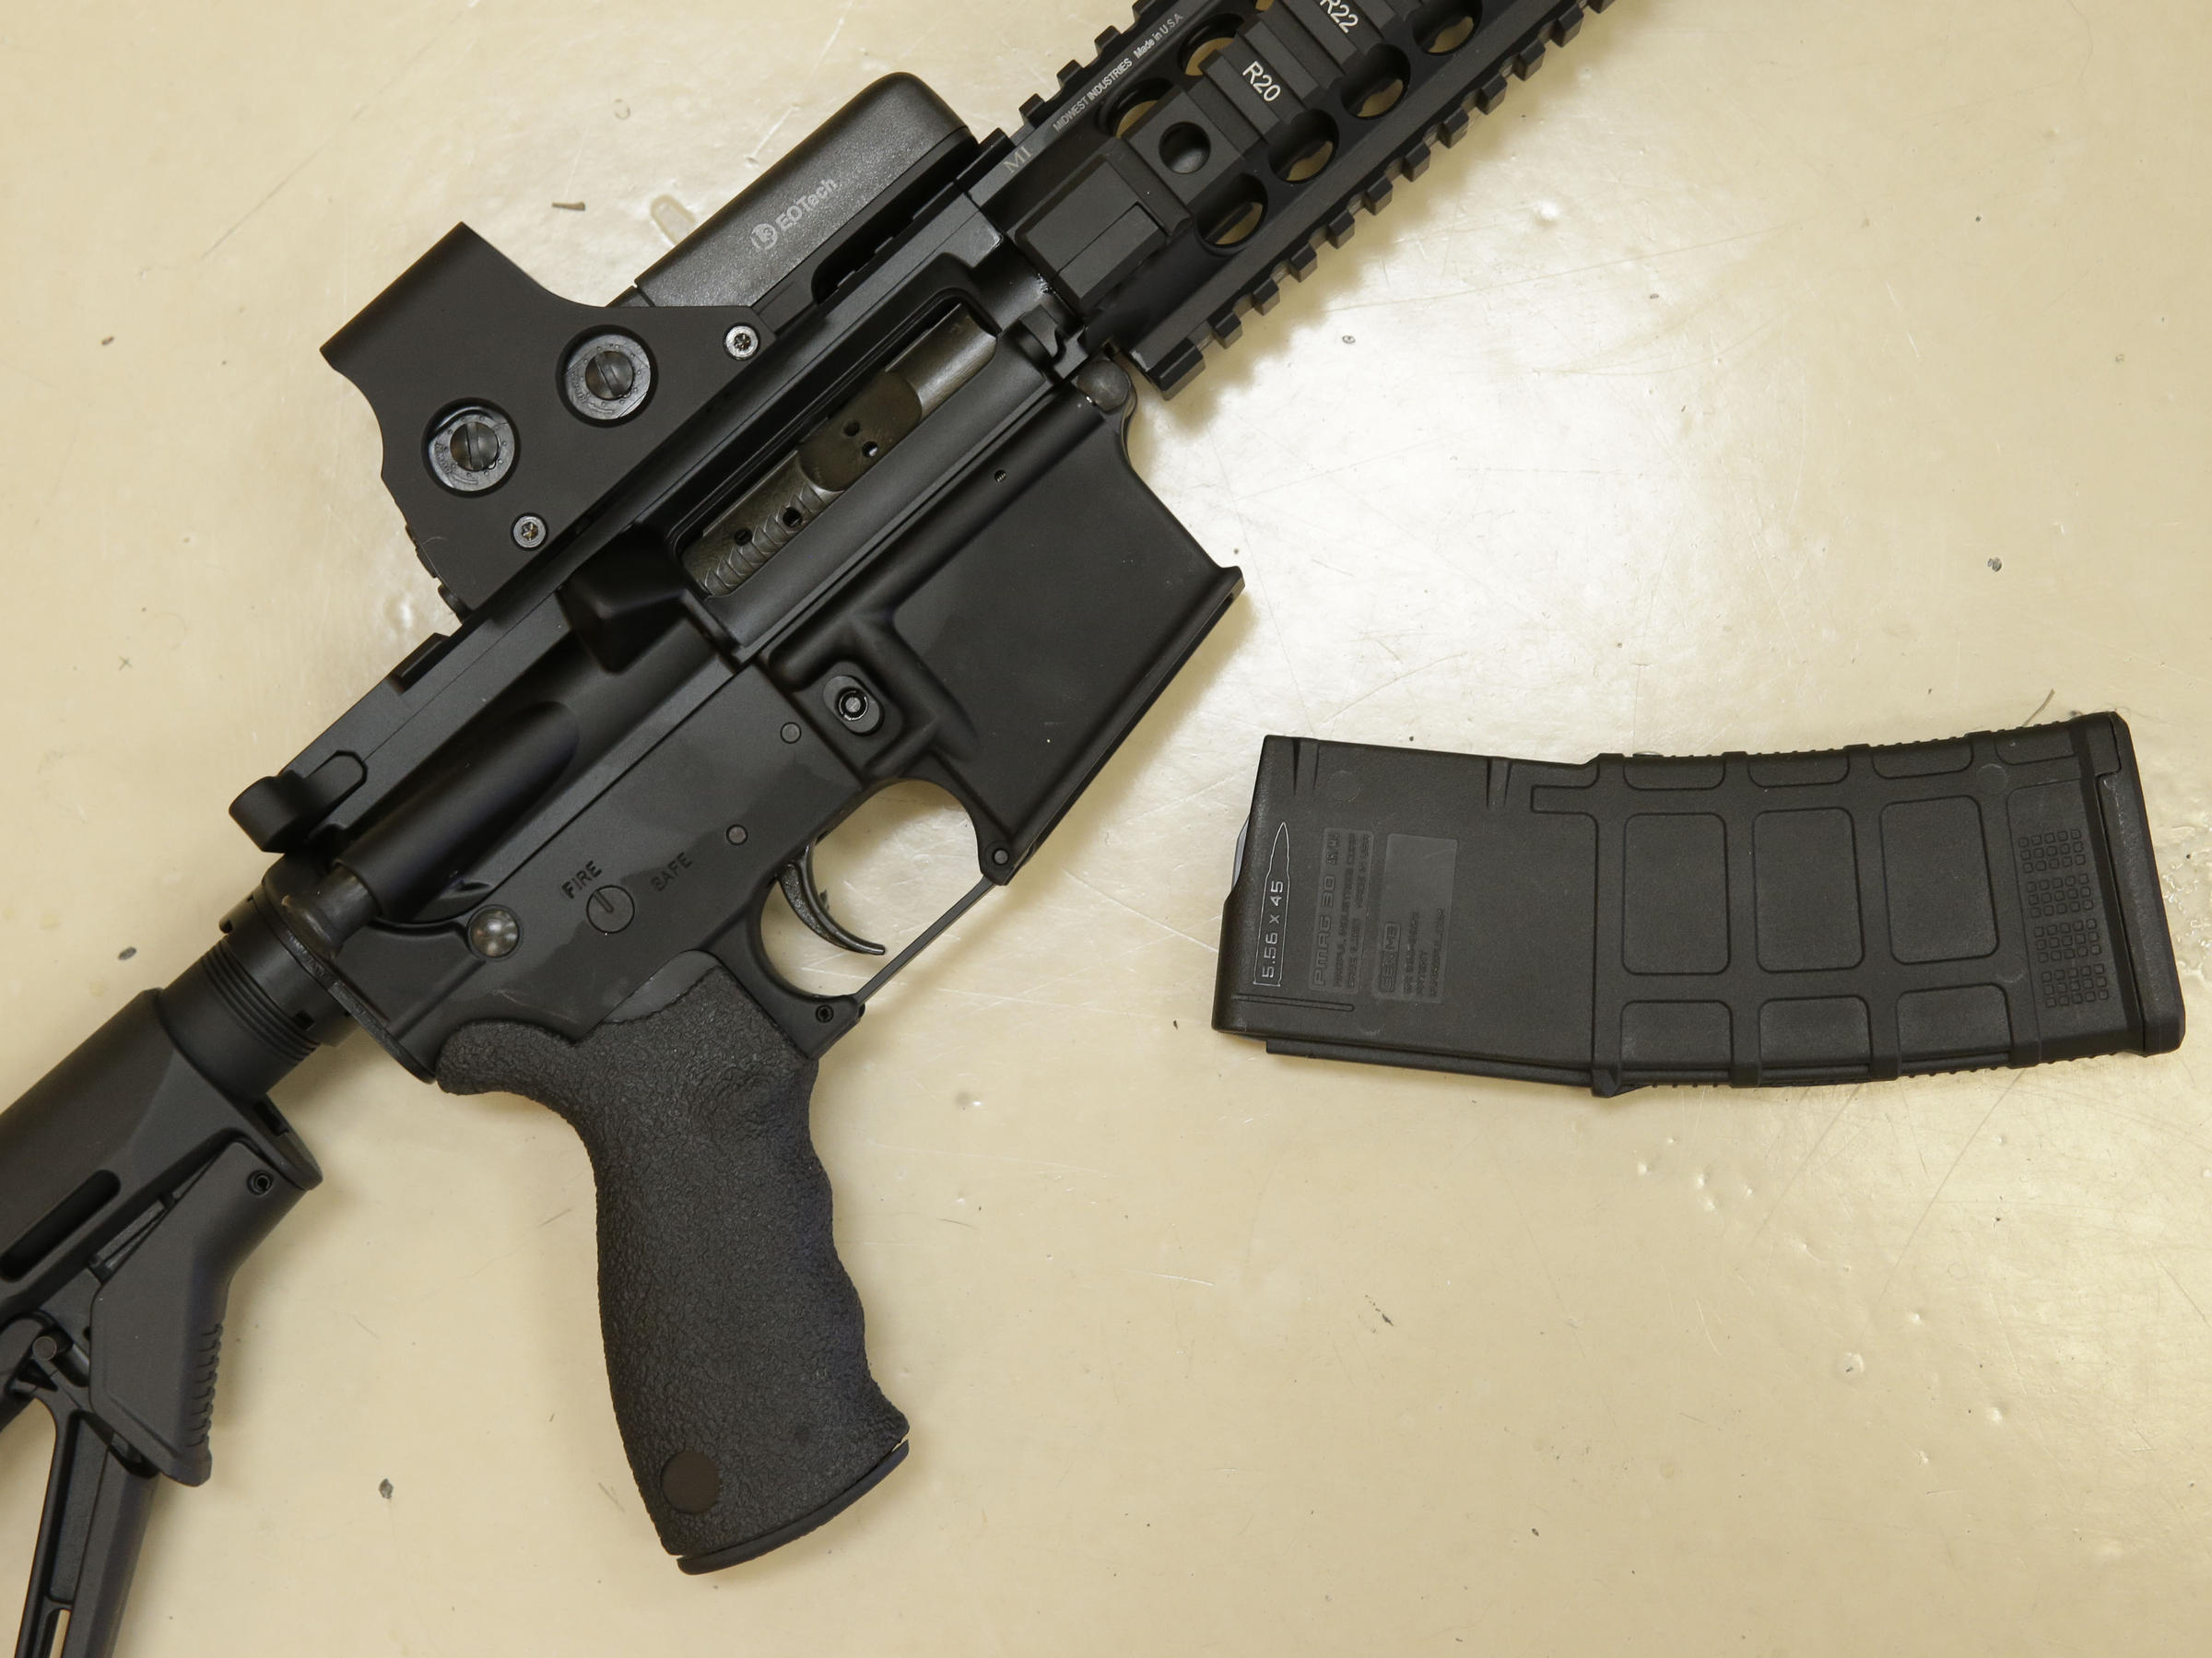 Appeals Court Affirms State Gun Control Laws Passed After